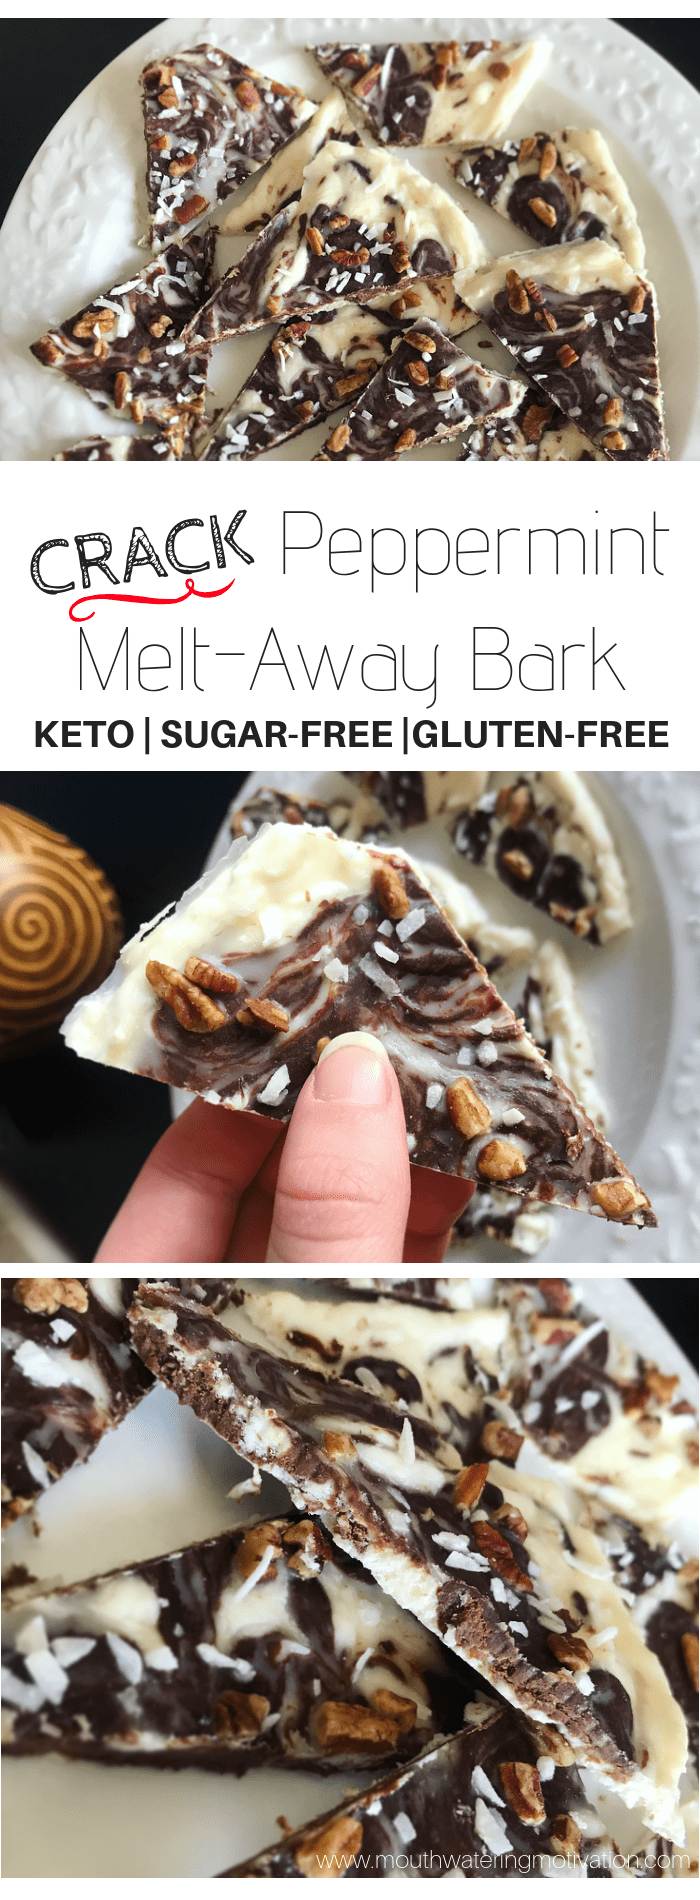 Crack Peppermint Meltaway Bark.png